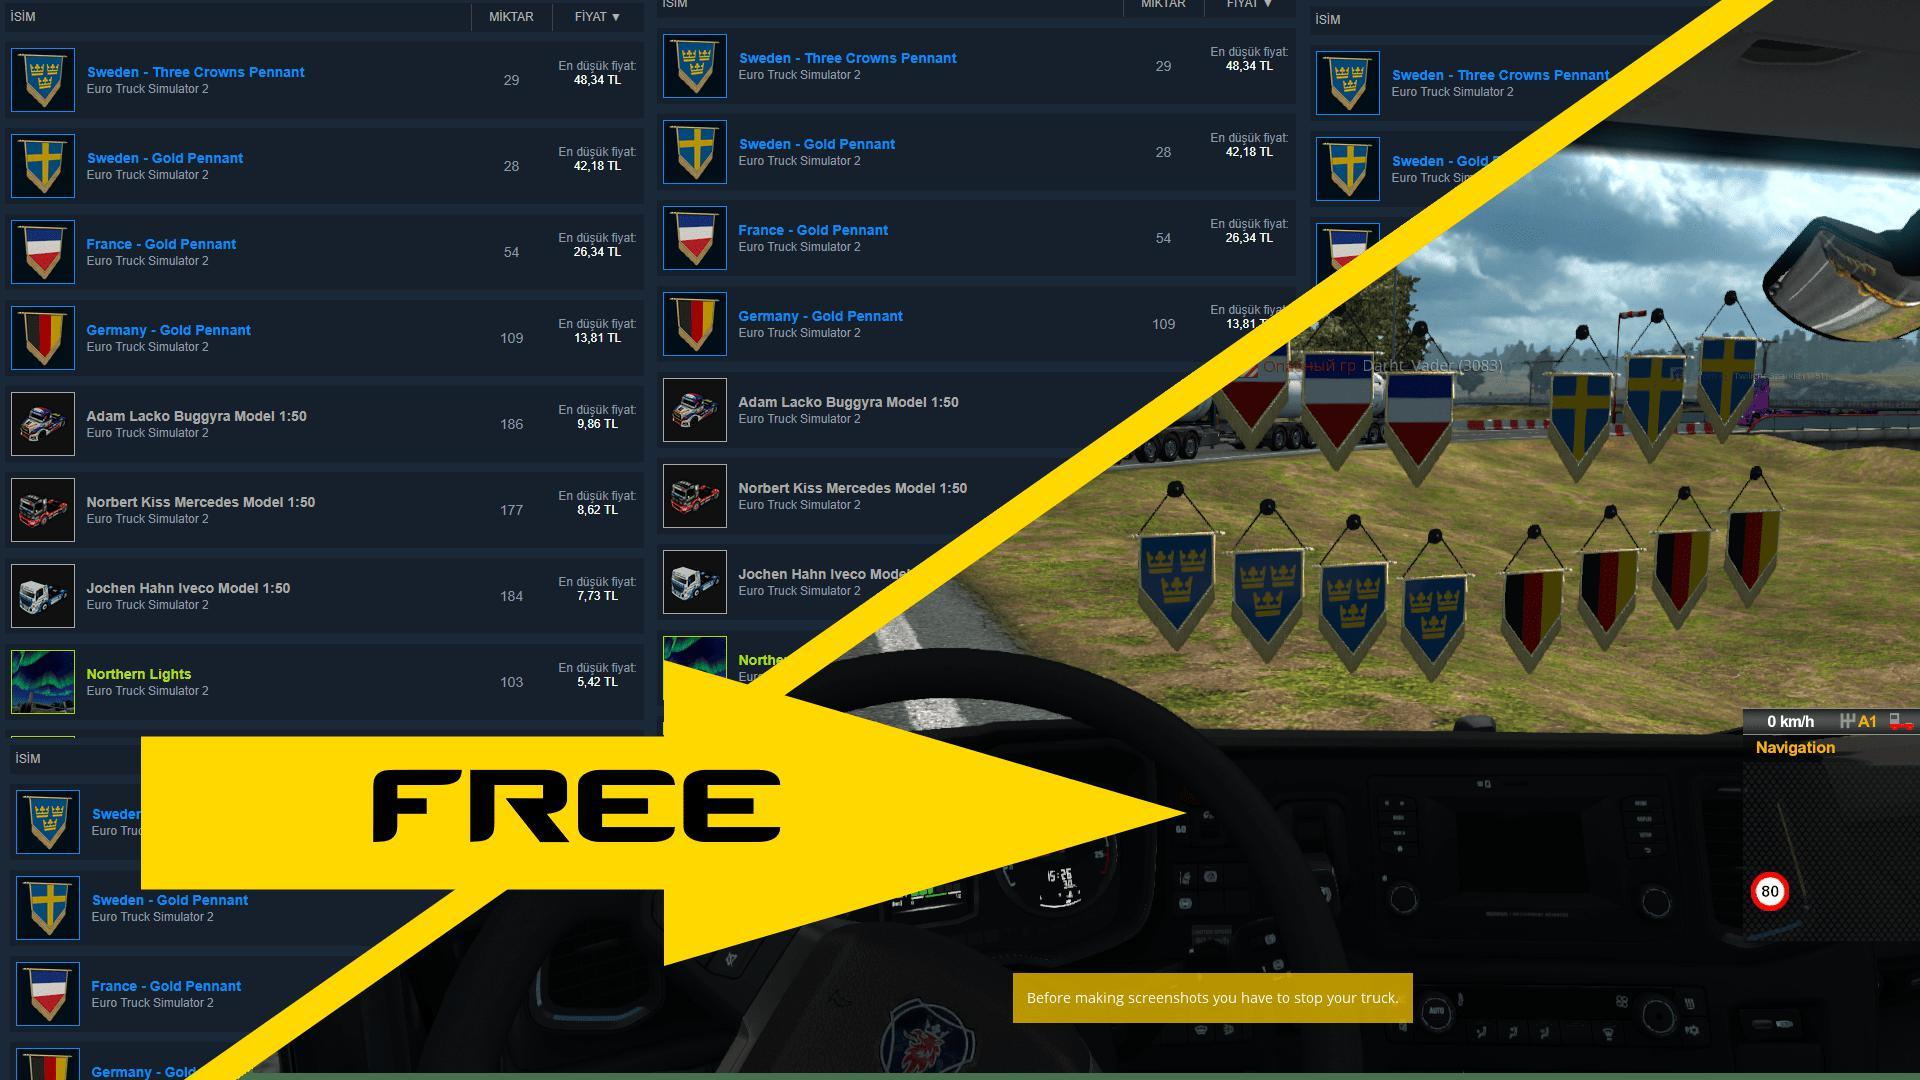 USE ETS2 ITEMS FREE 1 35 X » GamesMods net - FS19, FS17, ETS